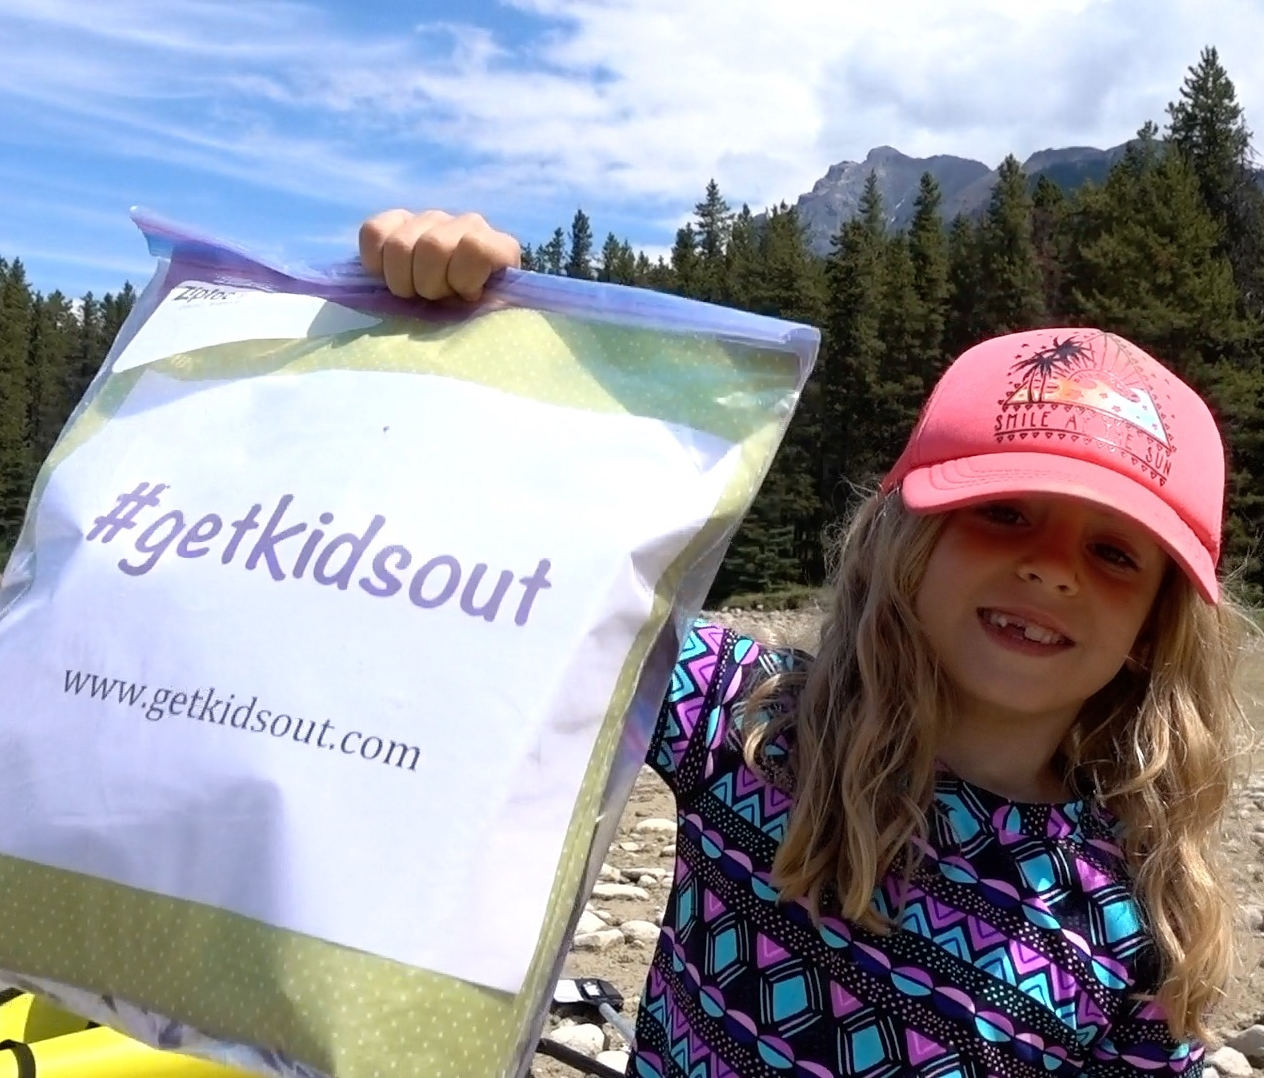 Ellie holds up a #getkidsout bag on launch day.